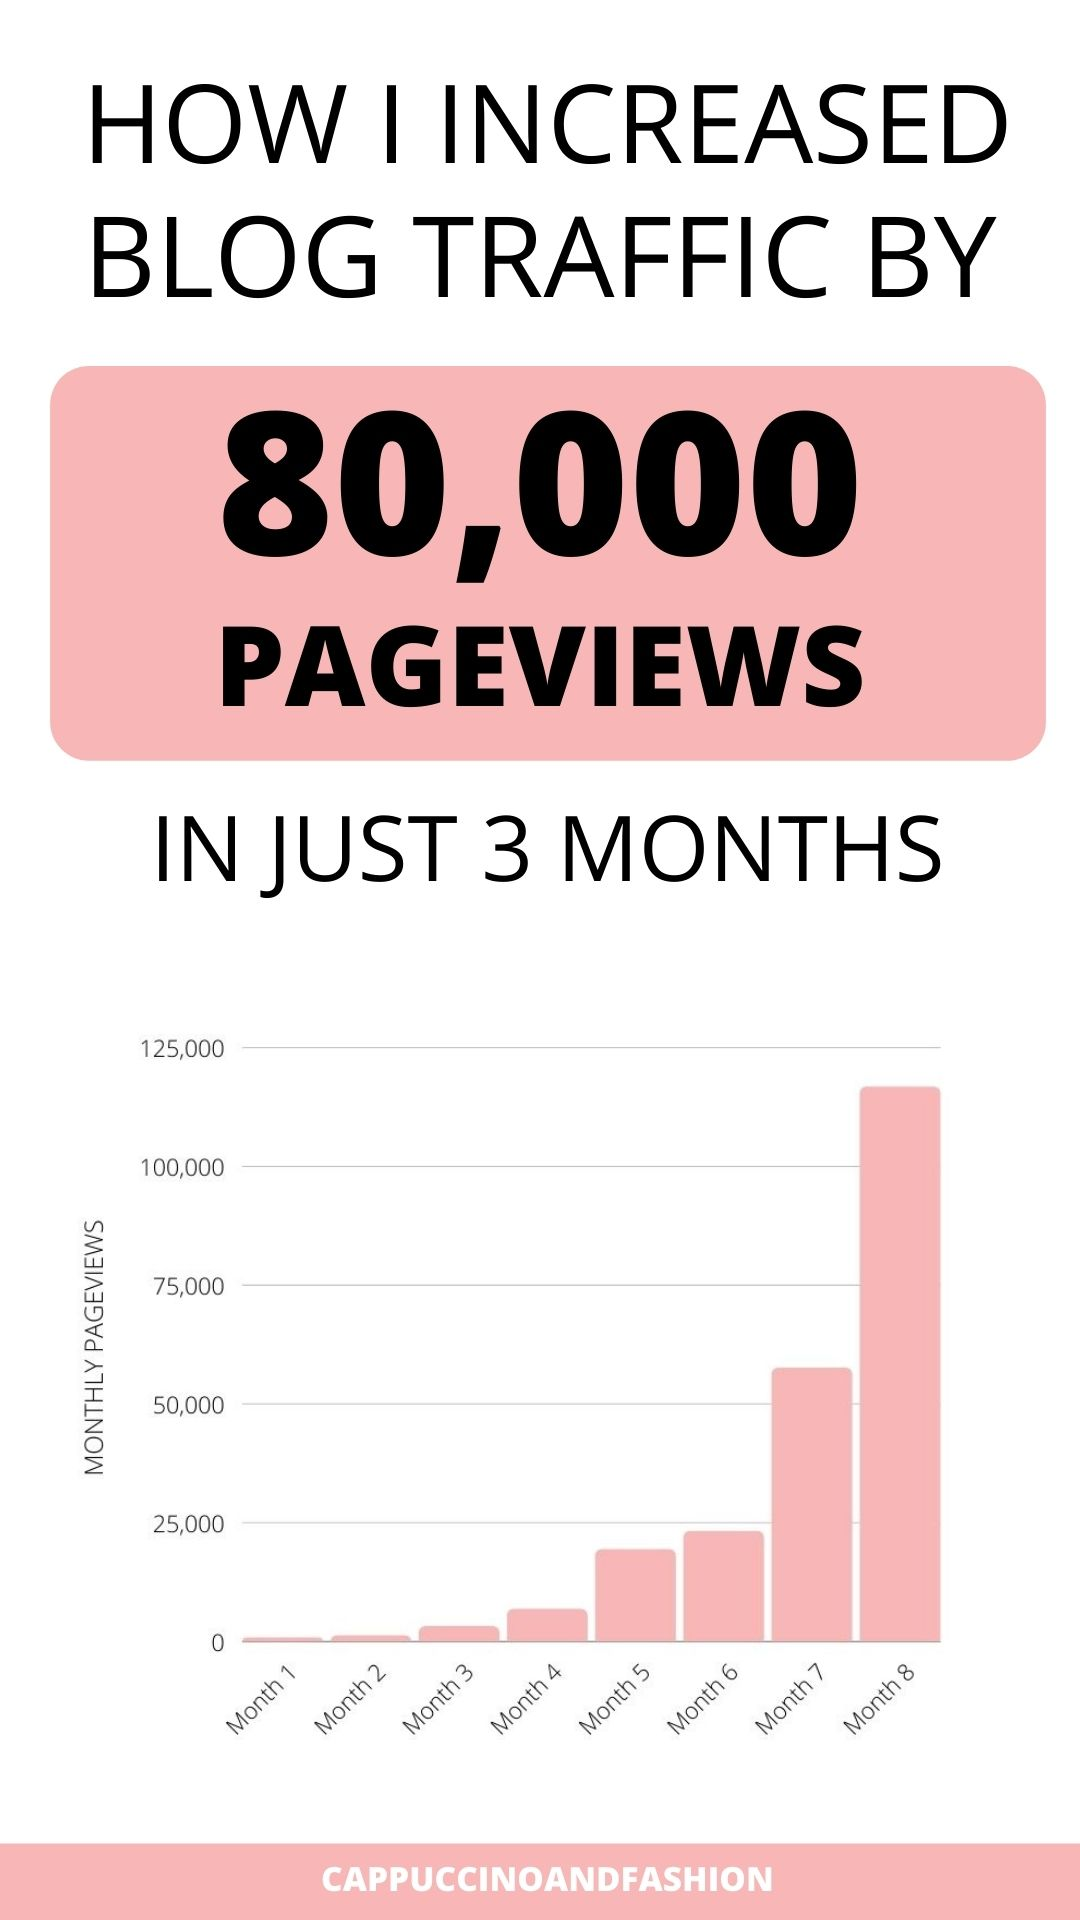 How I Increased Blog Traffic By 80,000 Pageviews in Just 3 Months